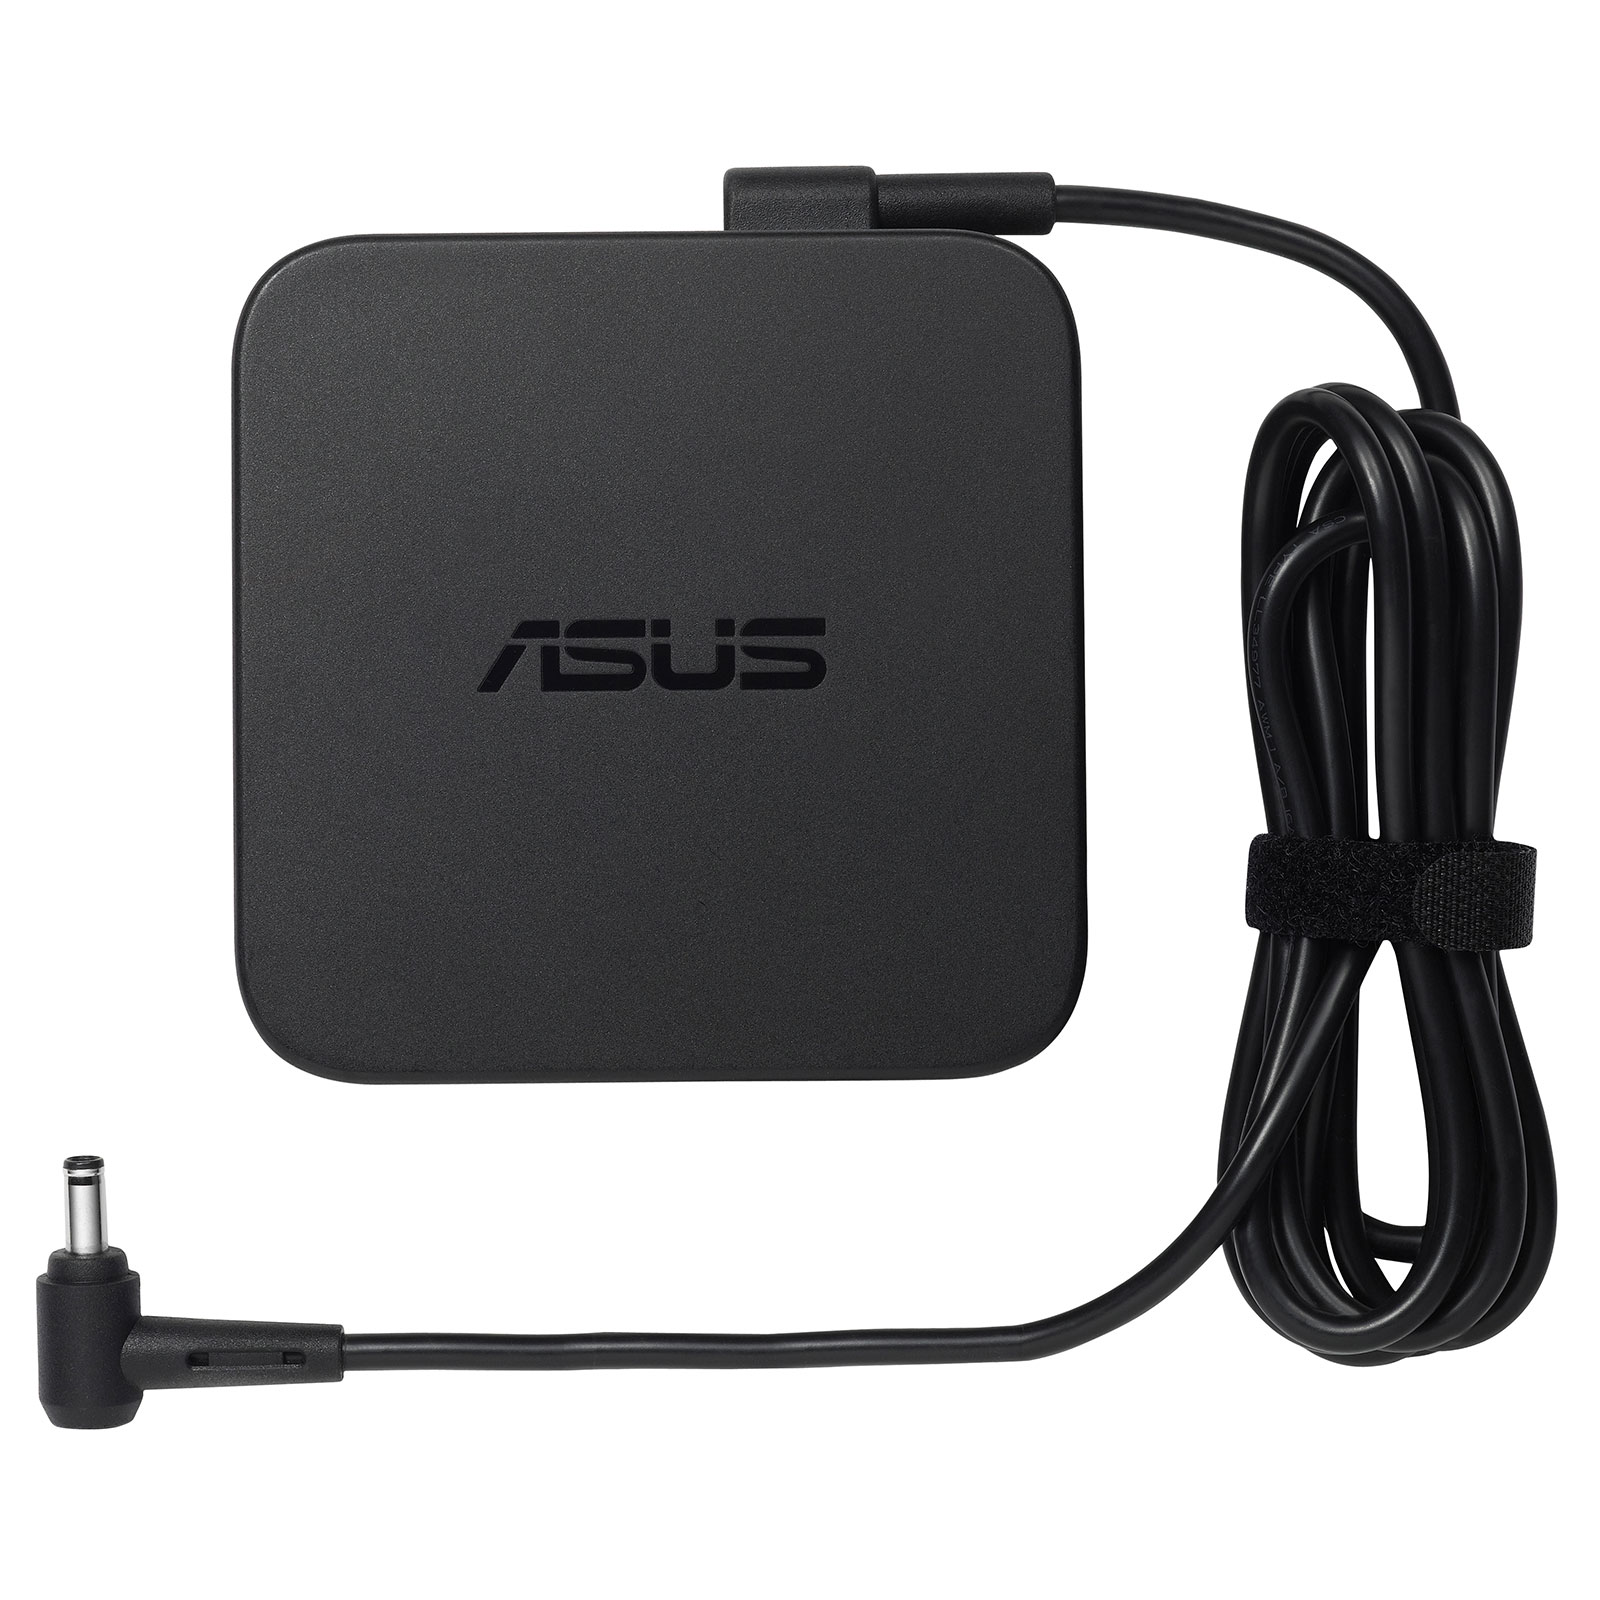 asus adaptateur secteur 65w 0a001 00040700 chargeur pc portable asus sur. Black Bedroom Furniture Sets. Home Design Ideas